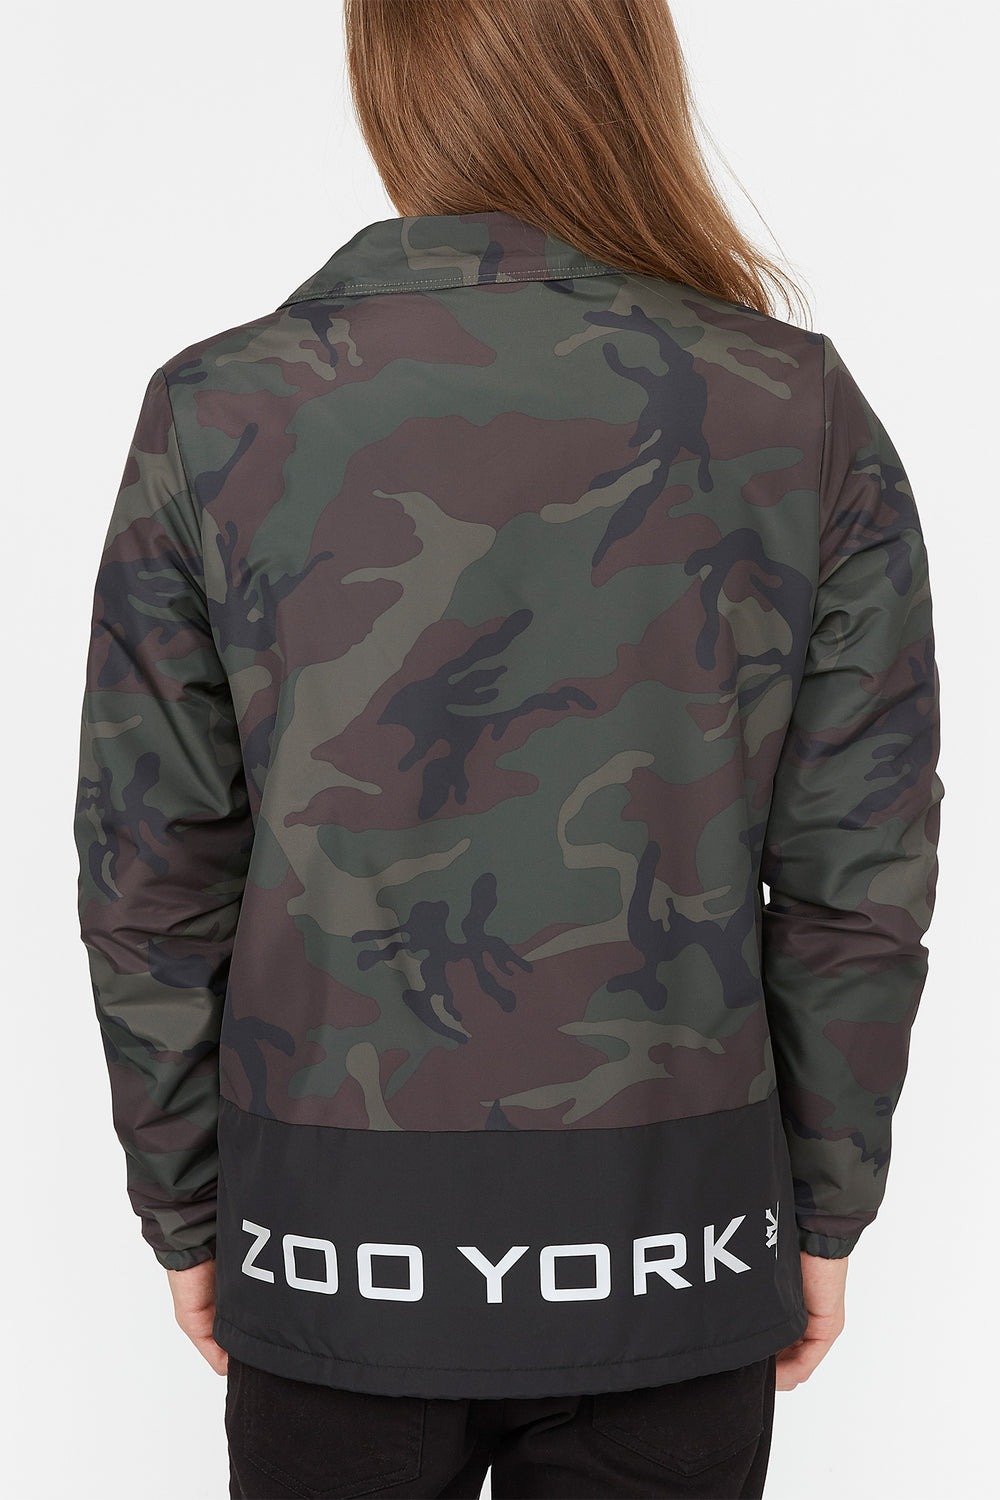 Zoo York Mens Bottom Panel Coach Jacket Camouflage